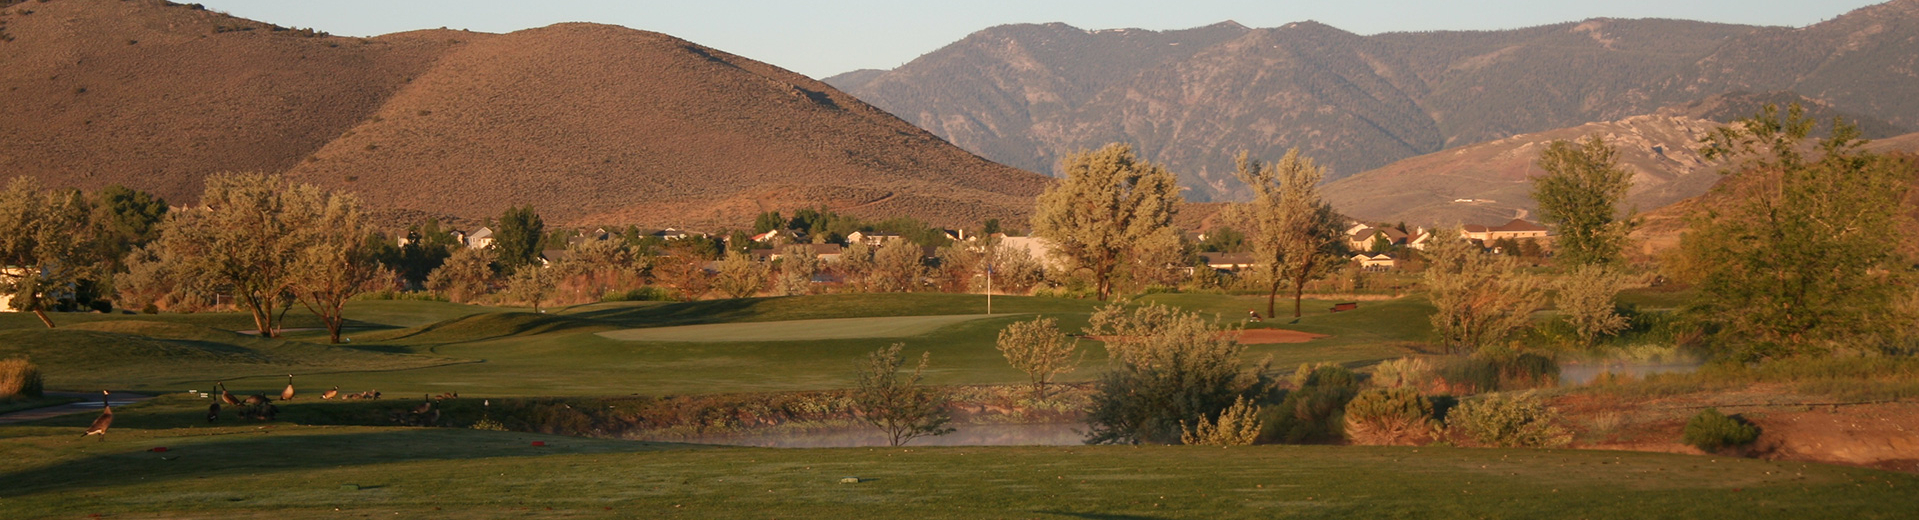 The beautiful mountain backdrop of Empire Ranch Golf Course in Carson City, Nevada